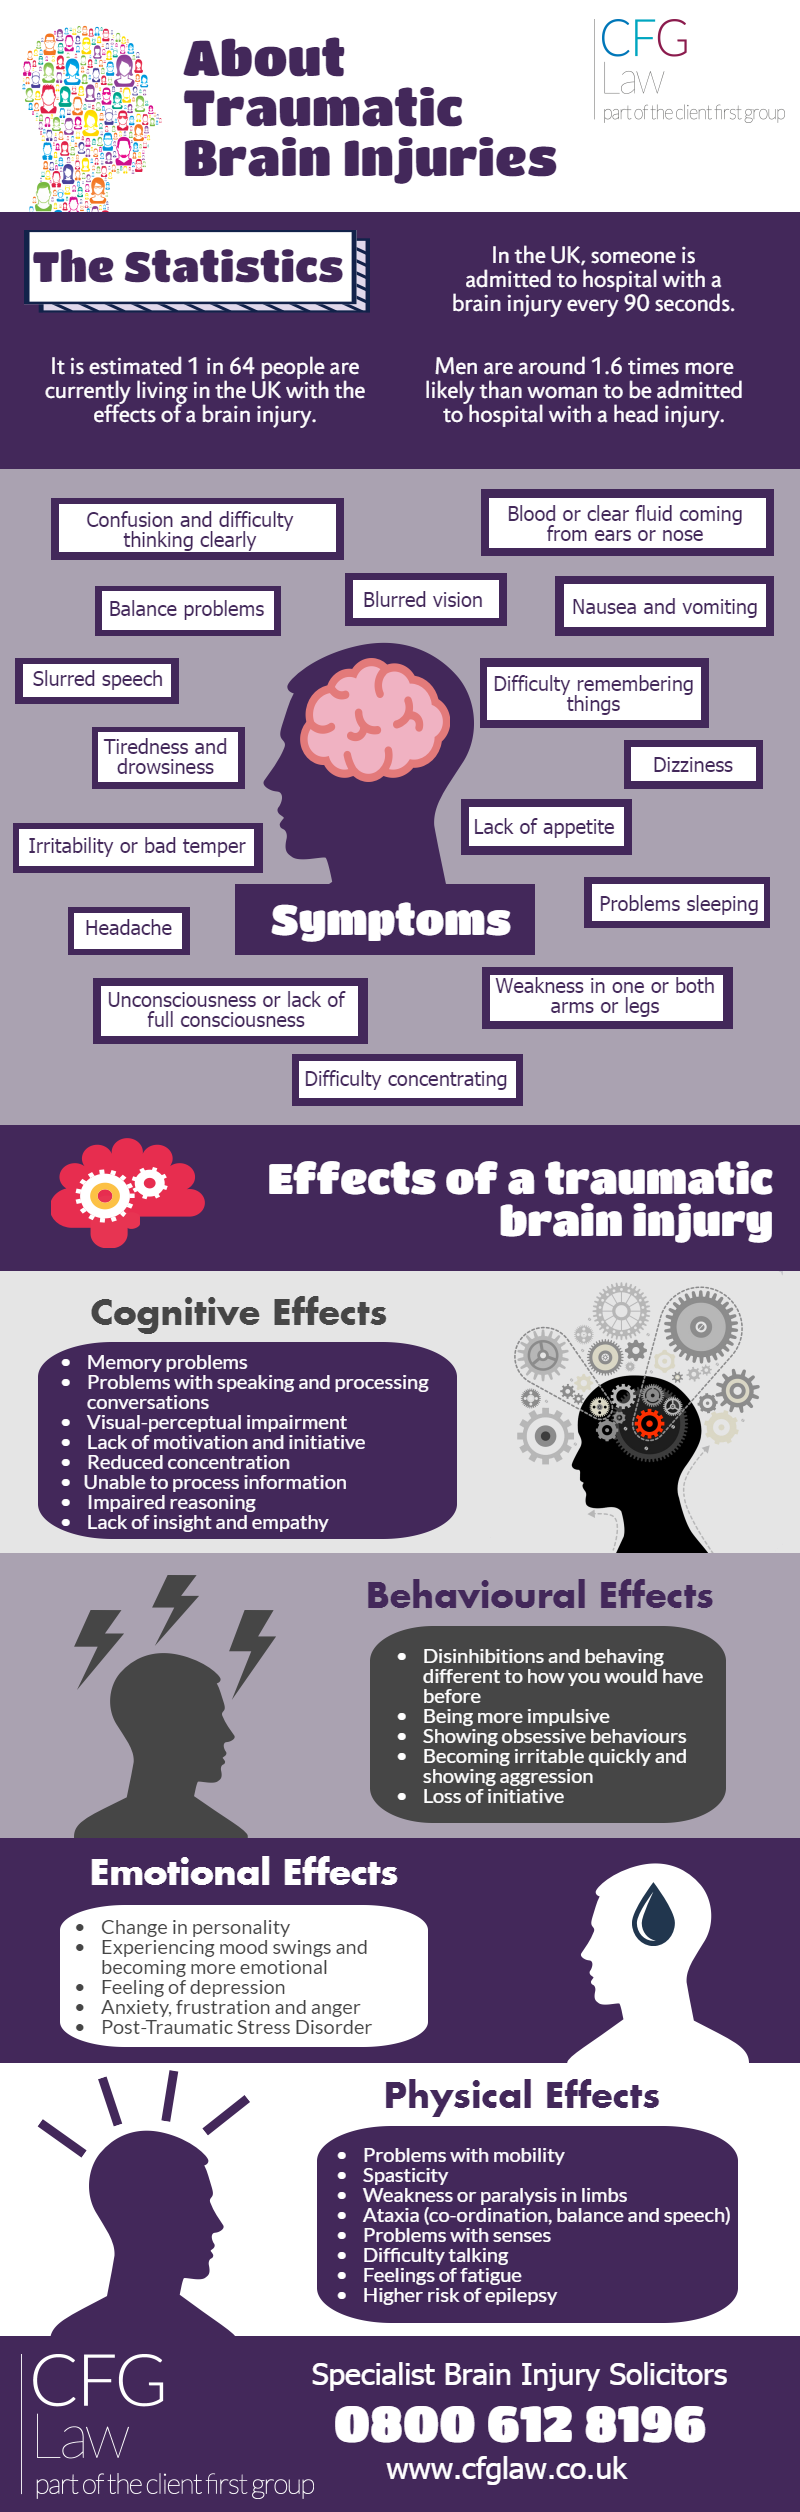 Infographic: About Traumatic Brain Injuries